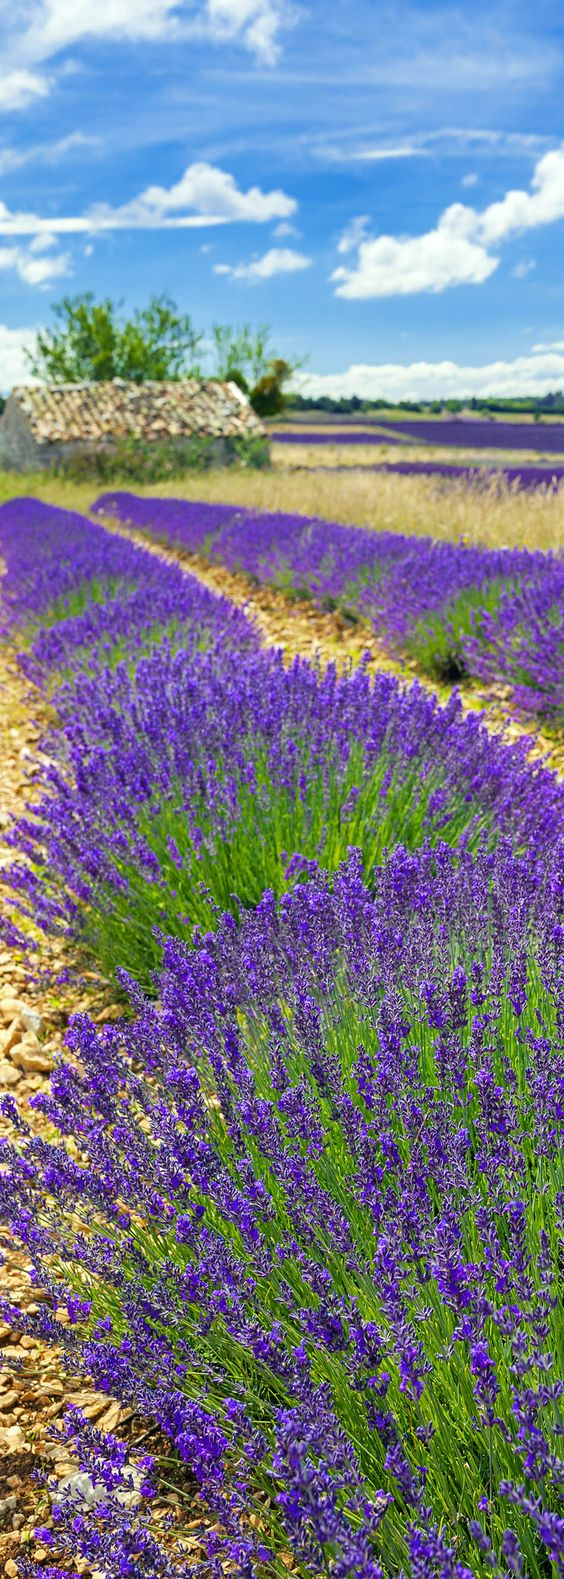 Amazing Lavender Field in Provence With Cloudy Sky, France   |   13 Amazing Photos of Lavender Fields that will Rock your World